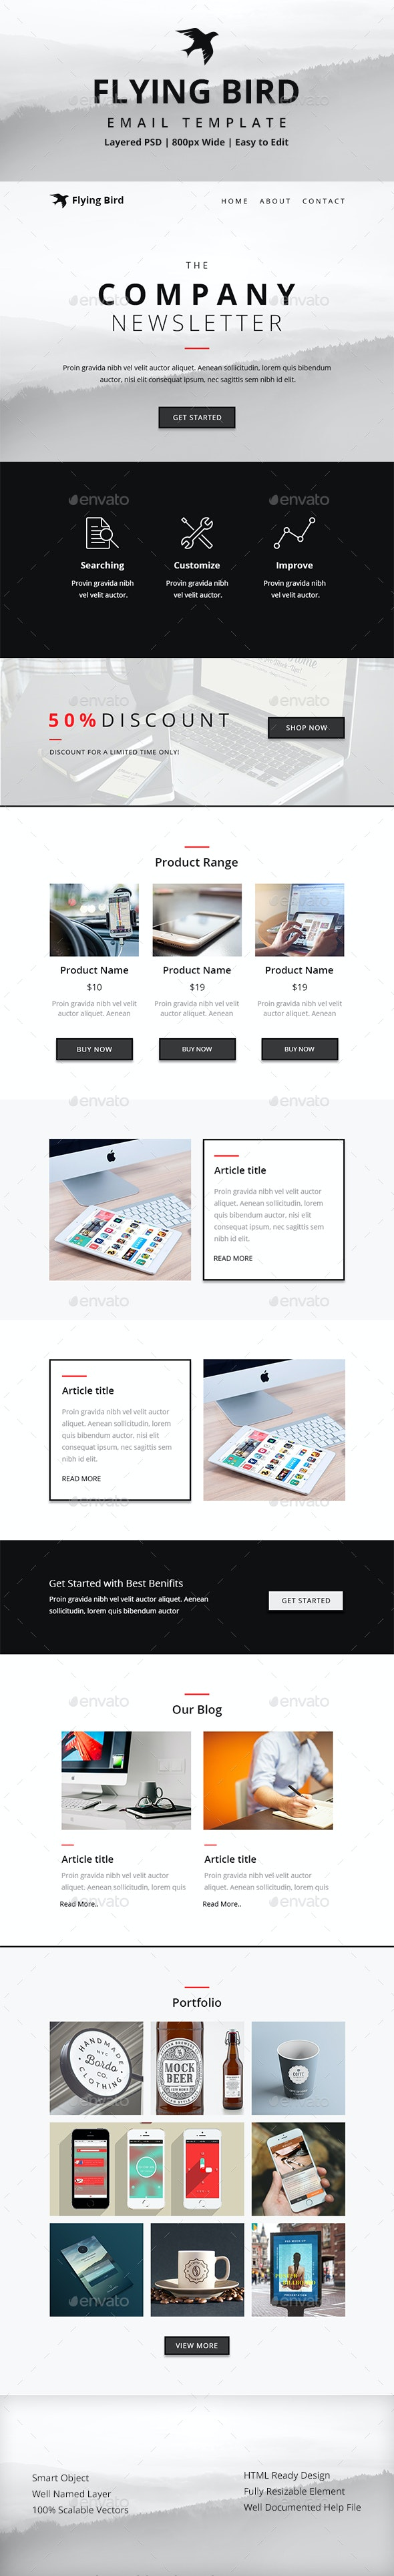 Flying Bird Email Template - E-newsletters Web Elements